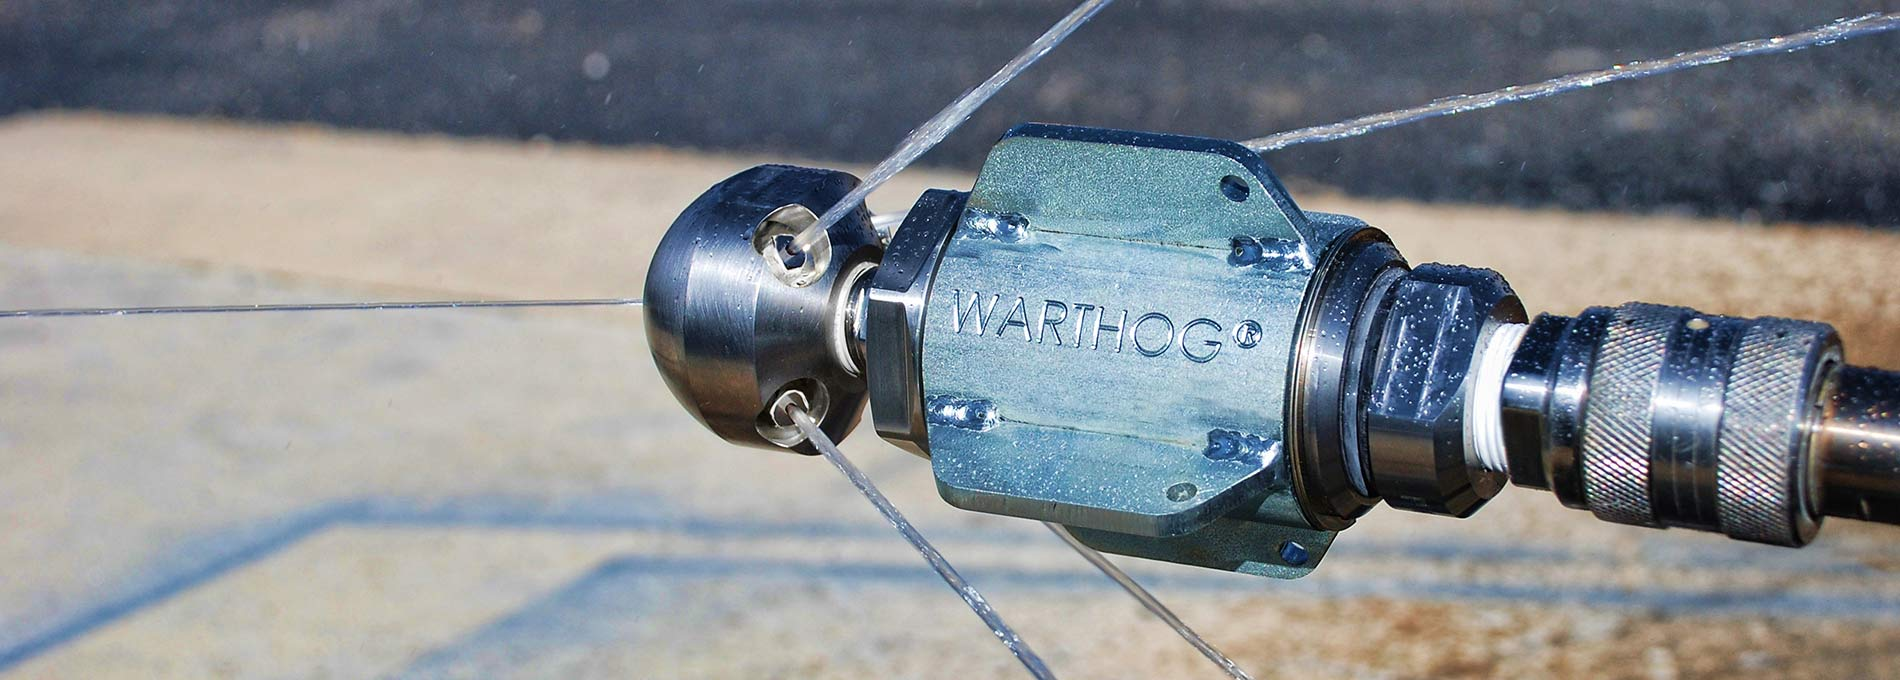 Warthog WG-1 sewer pipe cleaning tools